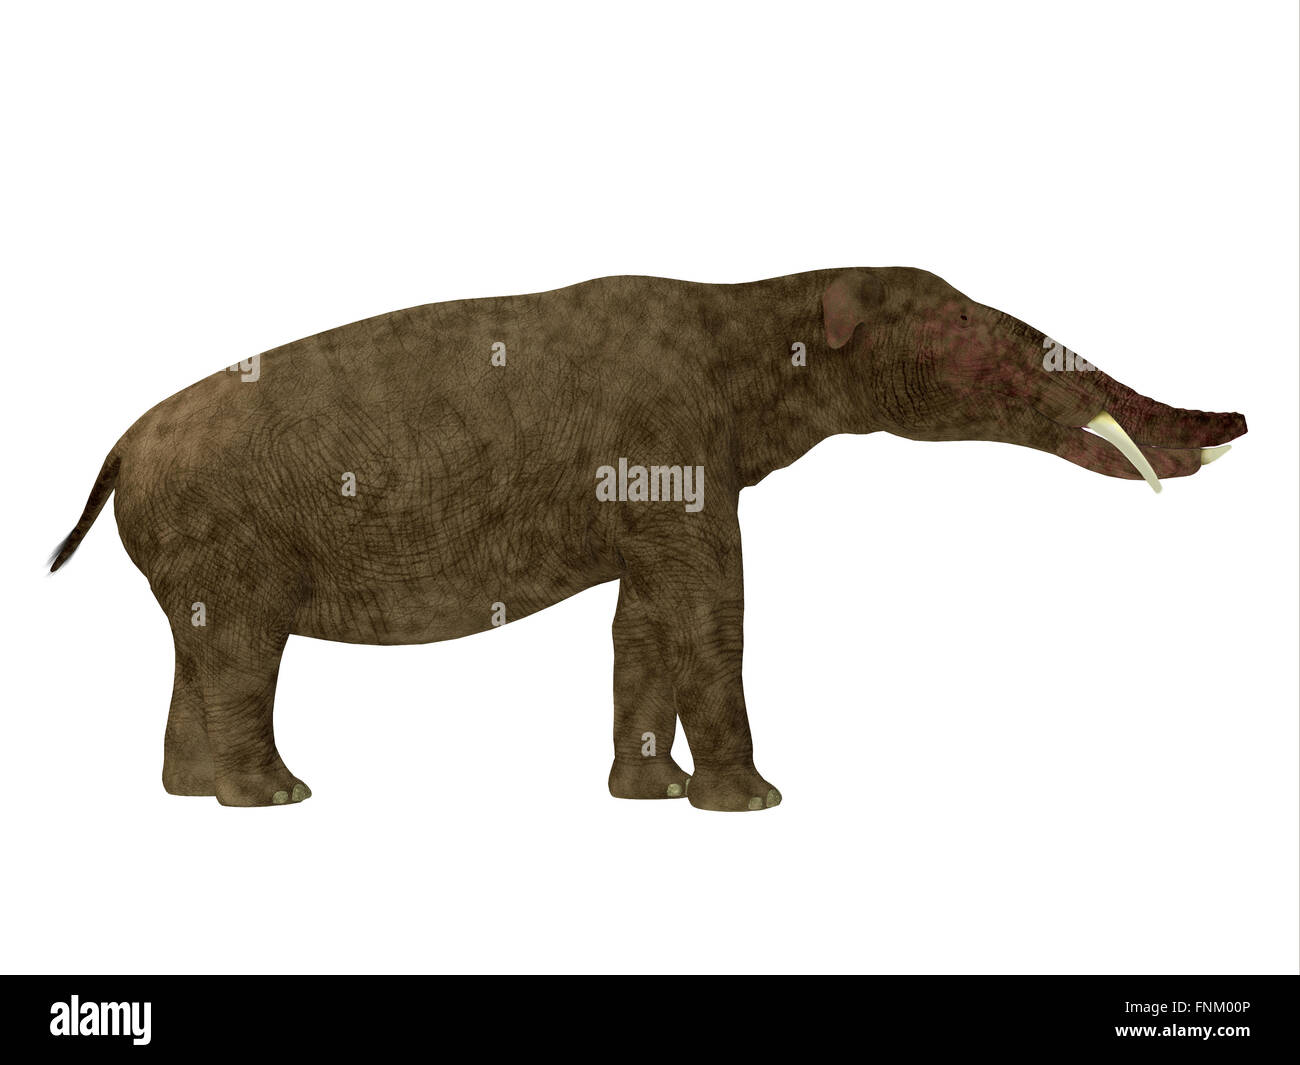 Platybelodon was a herbivorous extinct mammal related to the elephant that lived in Miocene Era. - Stock Image